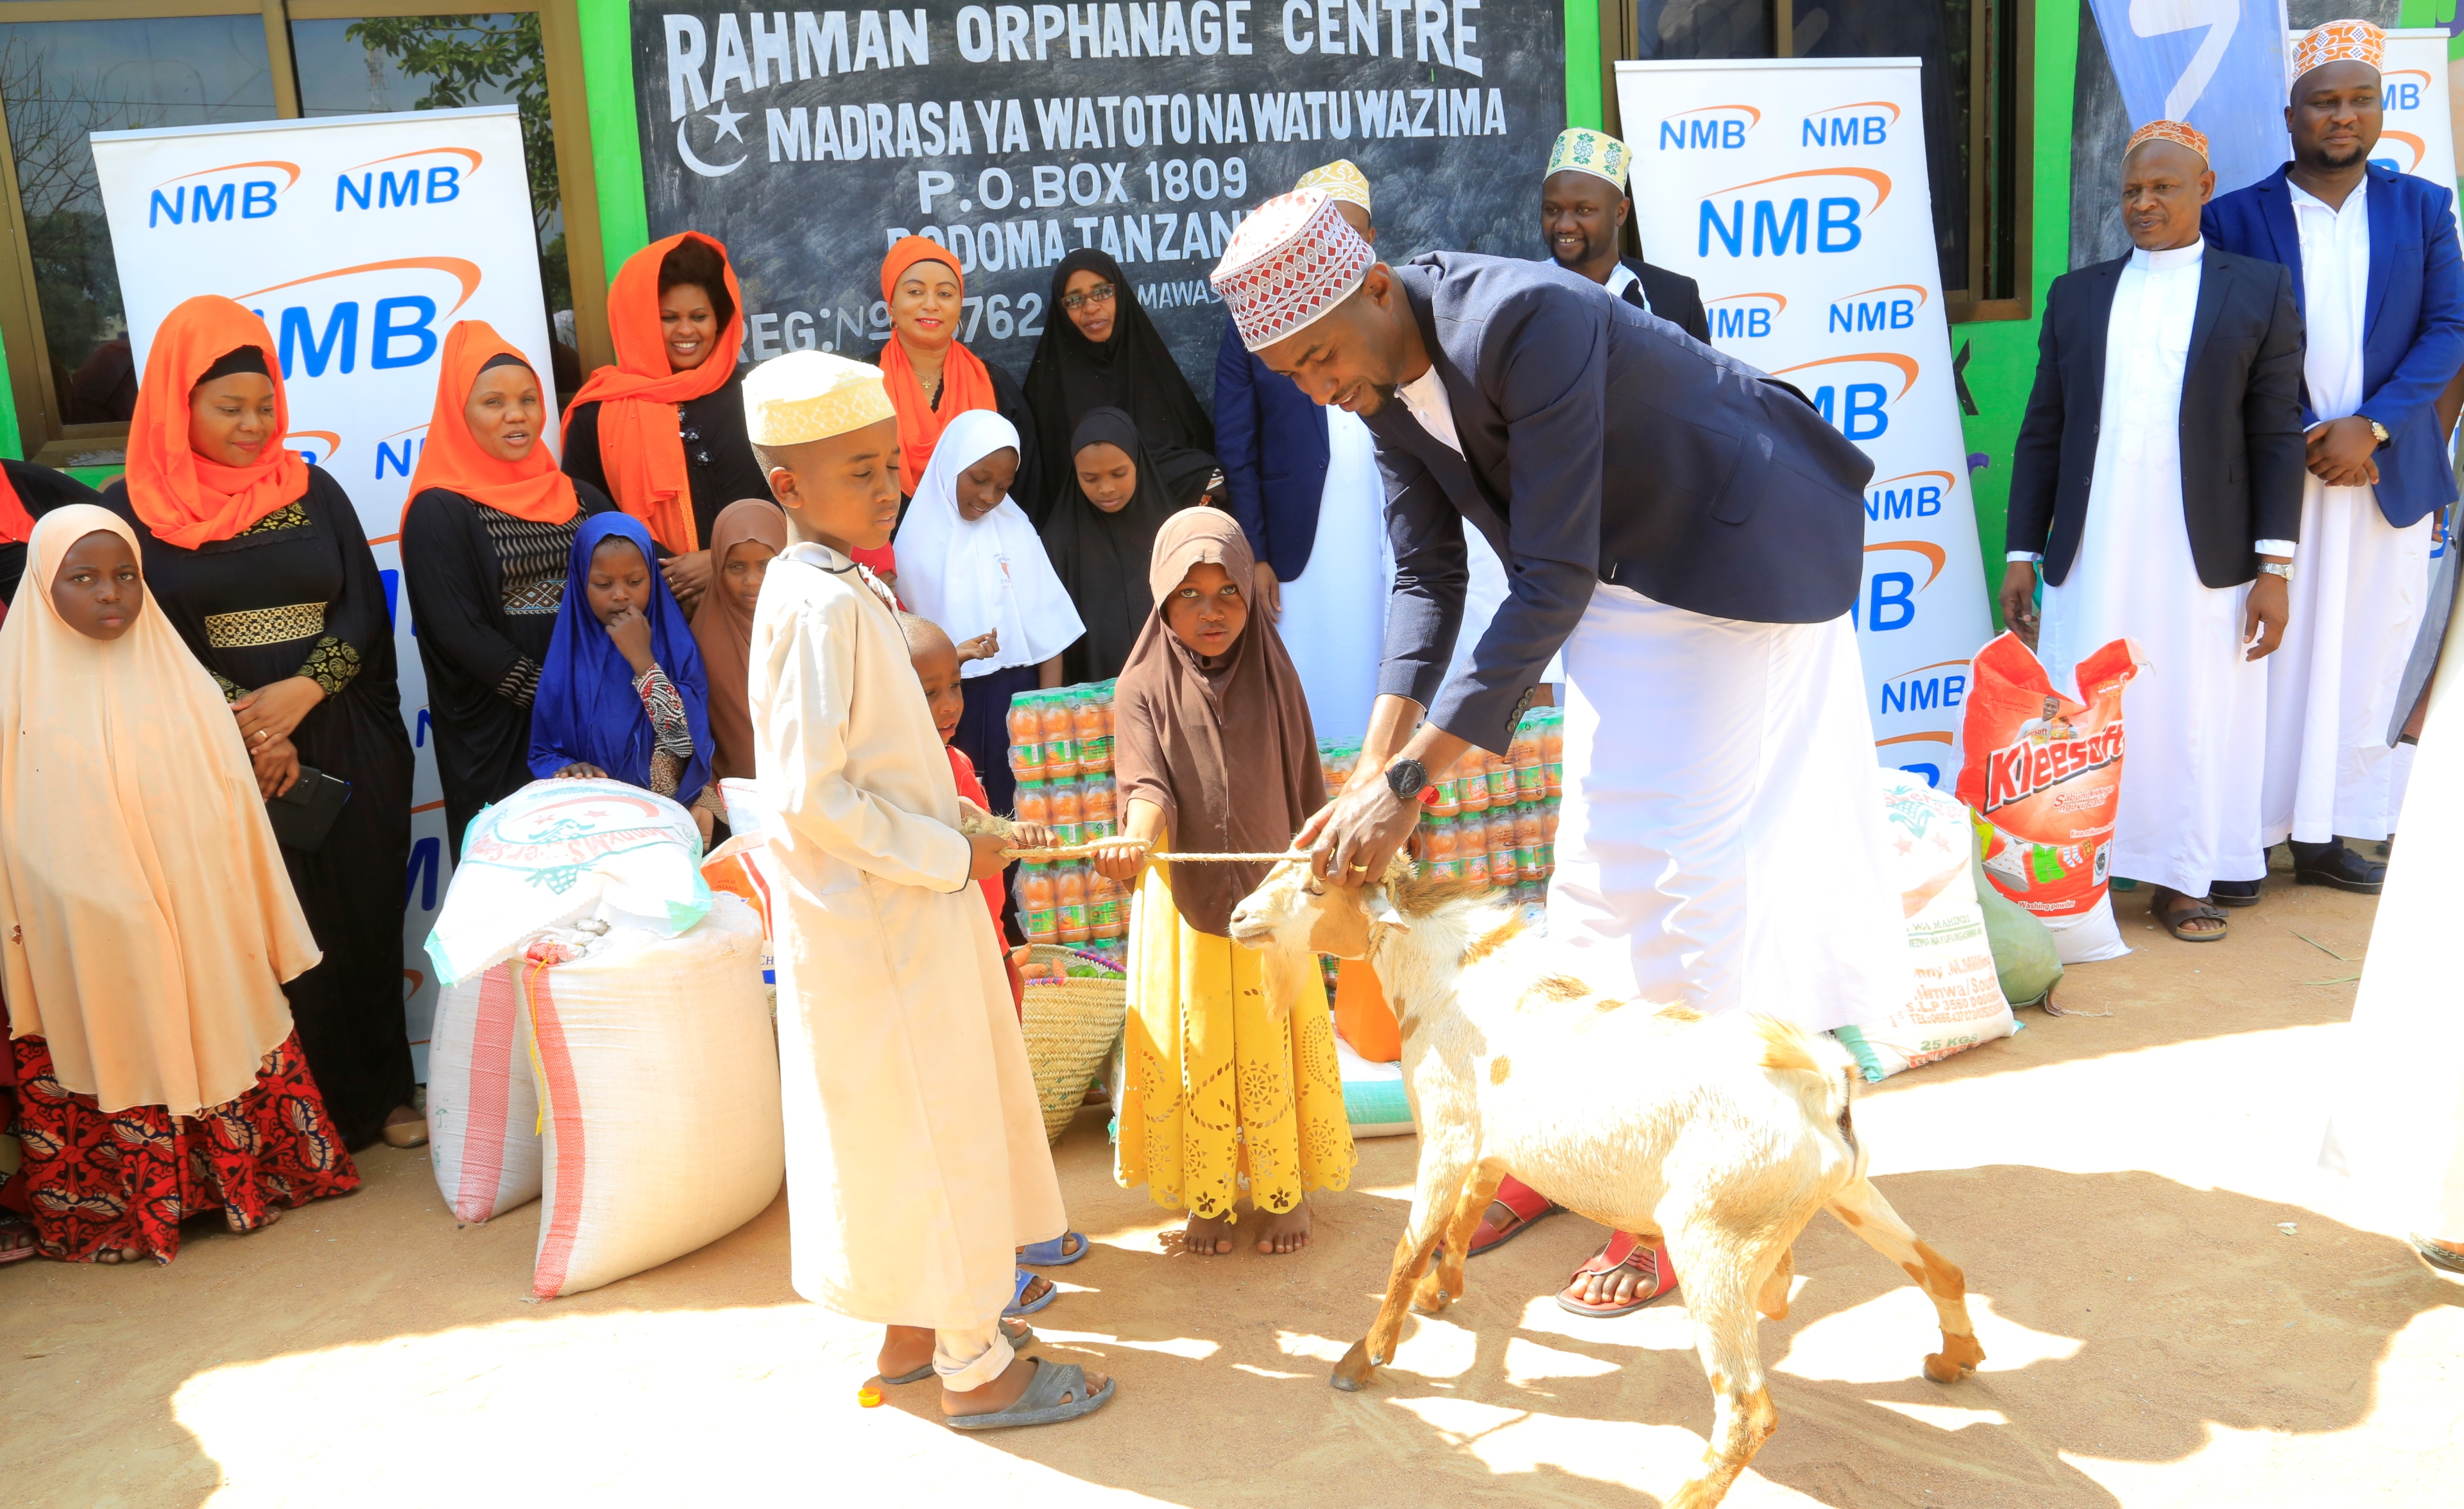 NMB puts smile to over 1,000 orphans